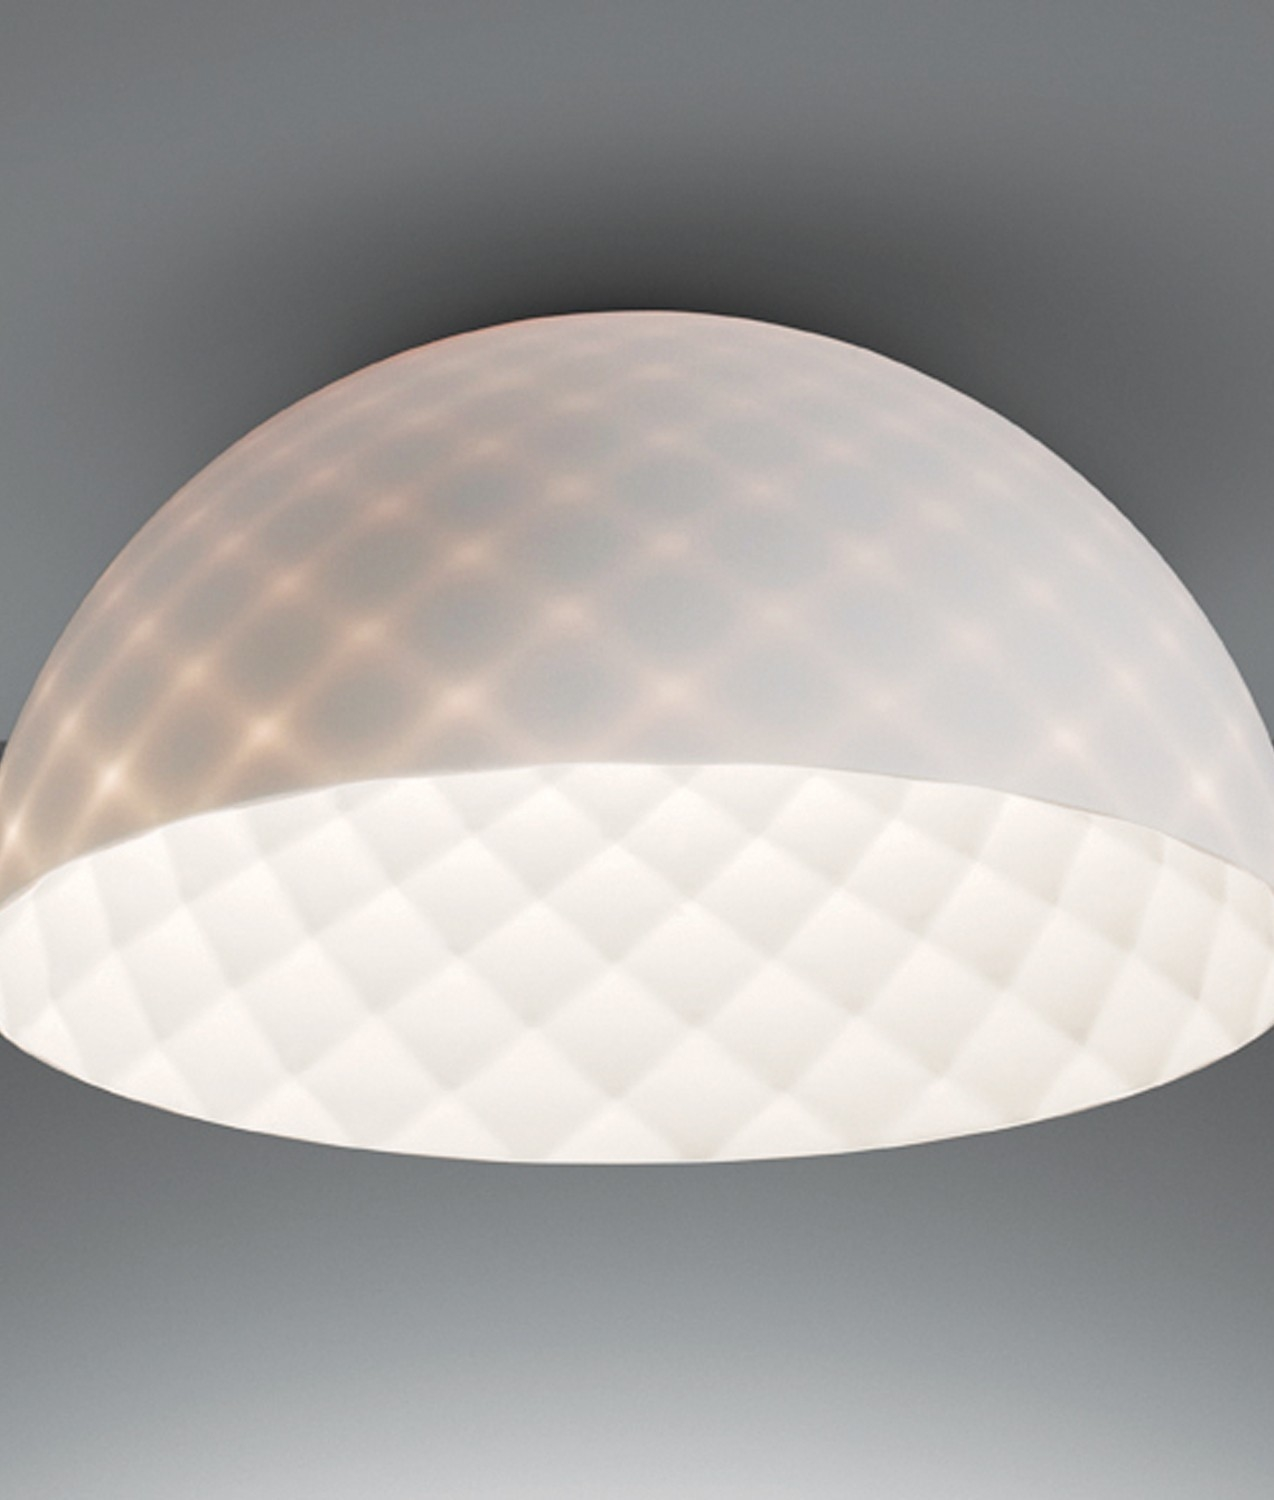 Ceiling Mounted Light With Semi Transparent Reflector